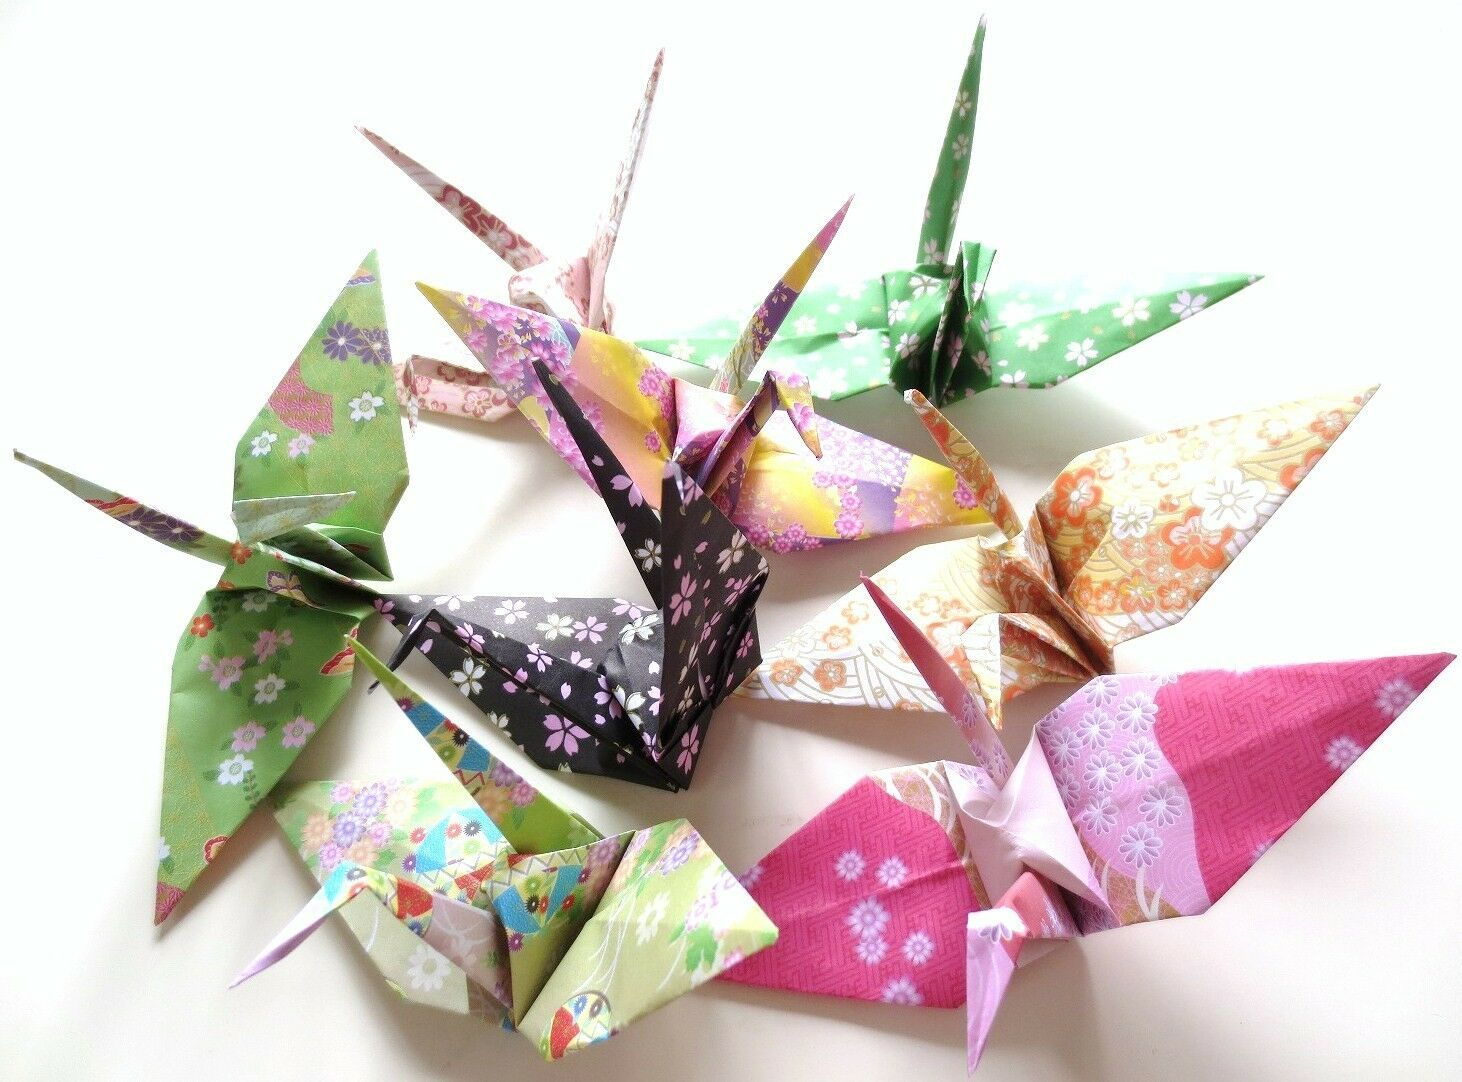 Origami handmade crane 8 japanese traditional pattern flower picture 1 of 3 jeuxipadfo Images